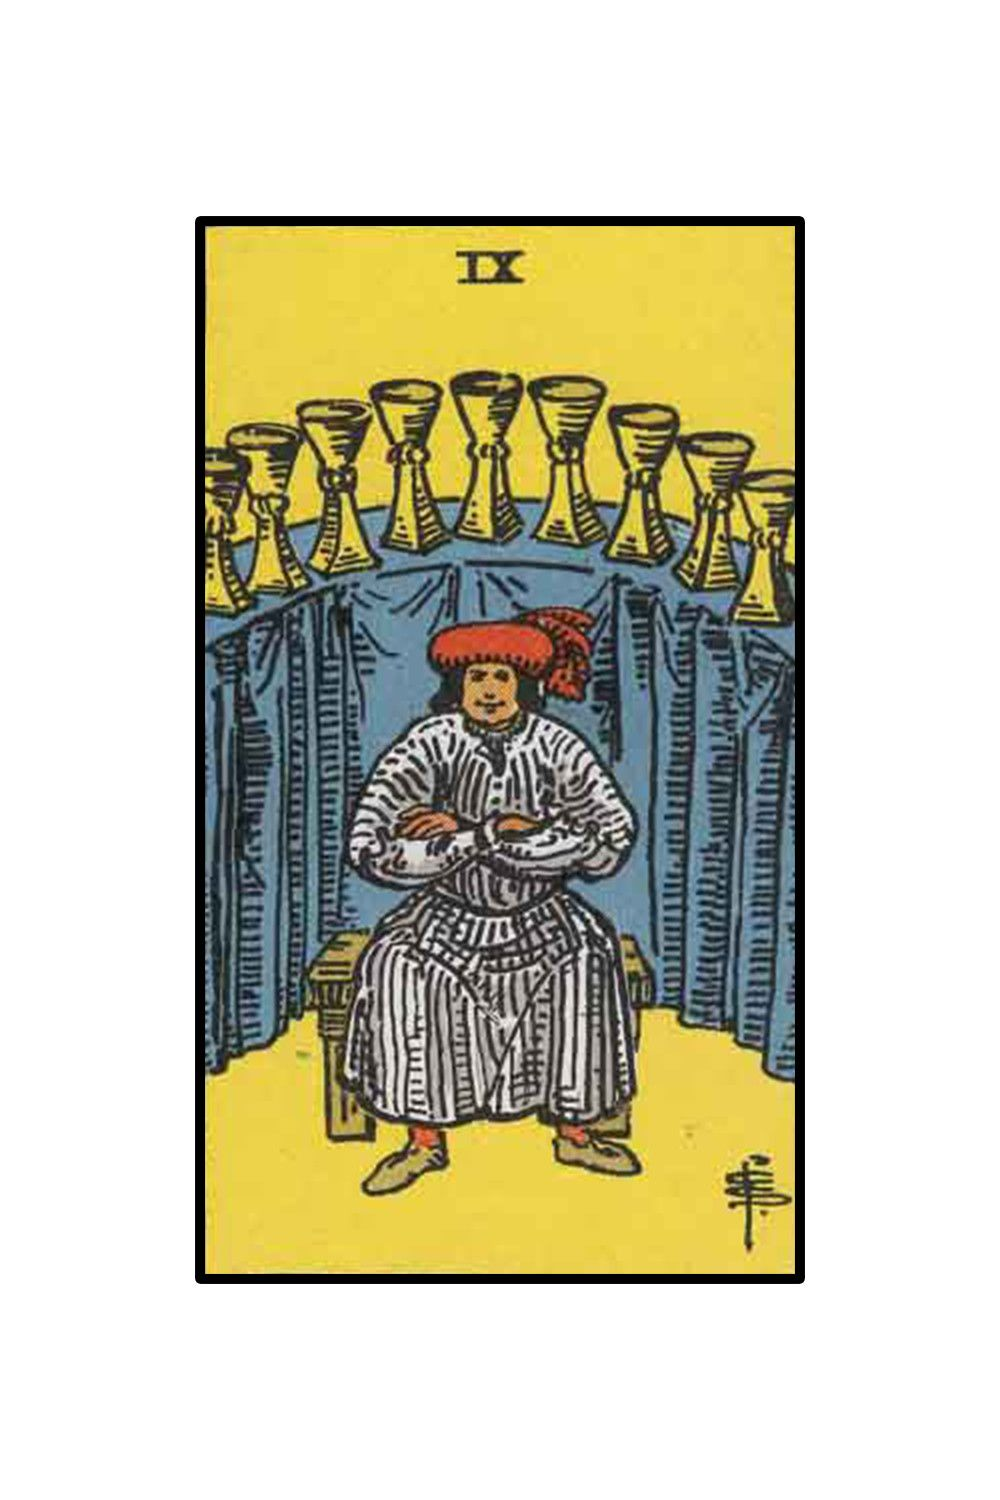 "<p>Confidant Aries, can nothing stand in your way? The Nine of Cups, the card of wish fulfillment, is your card of the week. As no stranger to success, it should not feel shocking as blockages are removed; ""no"" quickly transform into ""yes"" in the coming days.  You know the old catch phrase ""Be careful what you wish for because you just might get it?"" Reword this sentiment for yourself as, ""Wish for what you want for because you will absolutely claim it."" Focus on ideals bringing you the maximum amount of joy. Continue to finesse others into seeing things from your unique point of view. Your powerful thoughts manifest at a rapid pace. Keep your end goals firmly in mind. Take this opportunity to tweak exactly what you want down to the smallest detail. Consider emotions you want to embrace. Offer gratitude generously. Take extra steps to thank and acknowledge people who have gone out of their way for you. Remember, every achieved goal carries unforeseen circumstances and consequences. Reach toward goals aligning with your soul's purpose. Unexpected outcomes transform into delightful surprises.</p><p><br></p><p><br></p><p>Aries Tarot Tip of the Week ~ The answer is yes.</p>"